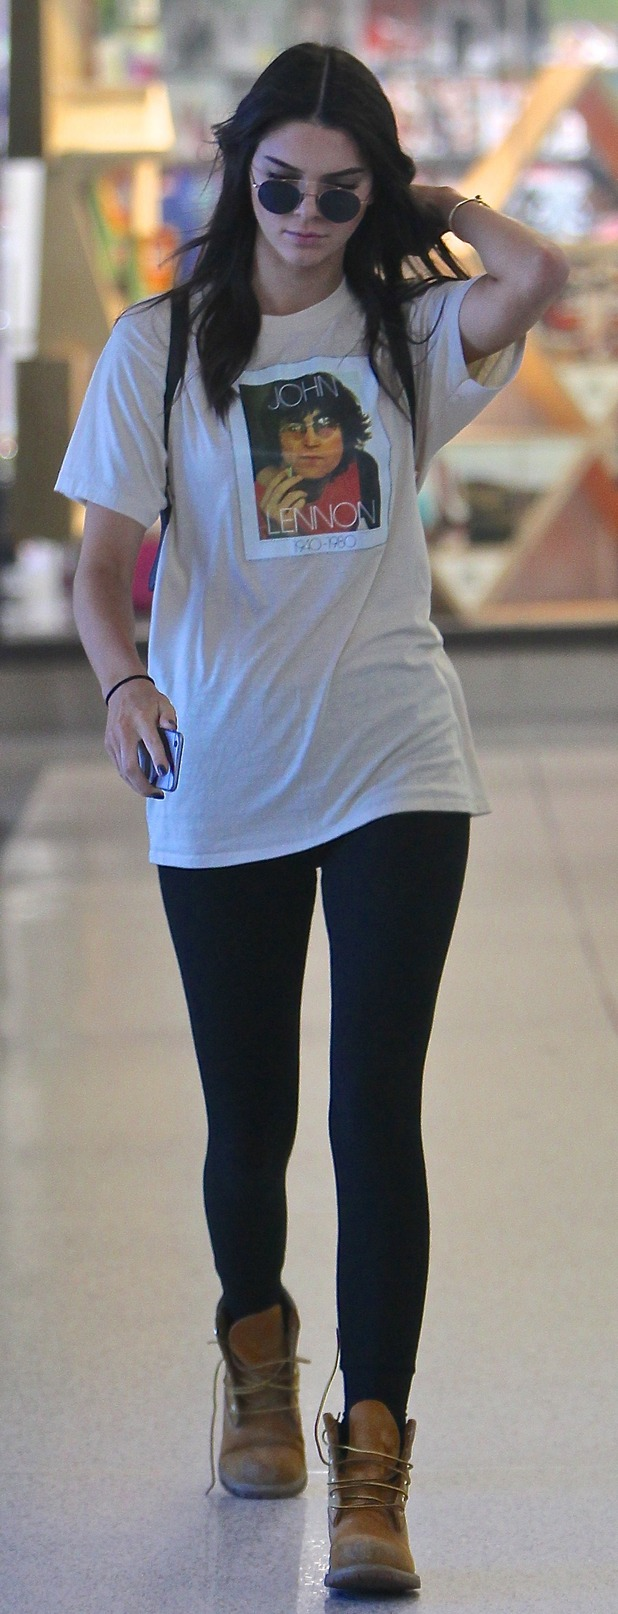 Kendall Jenner at L.A.X Airport in loose fitting band tee, 12th August 2015